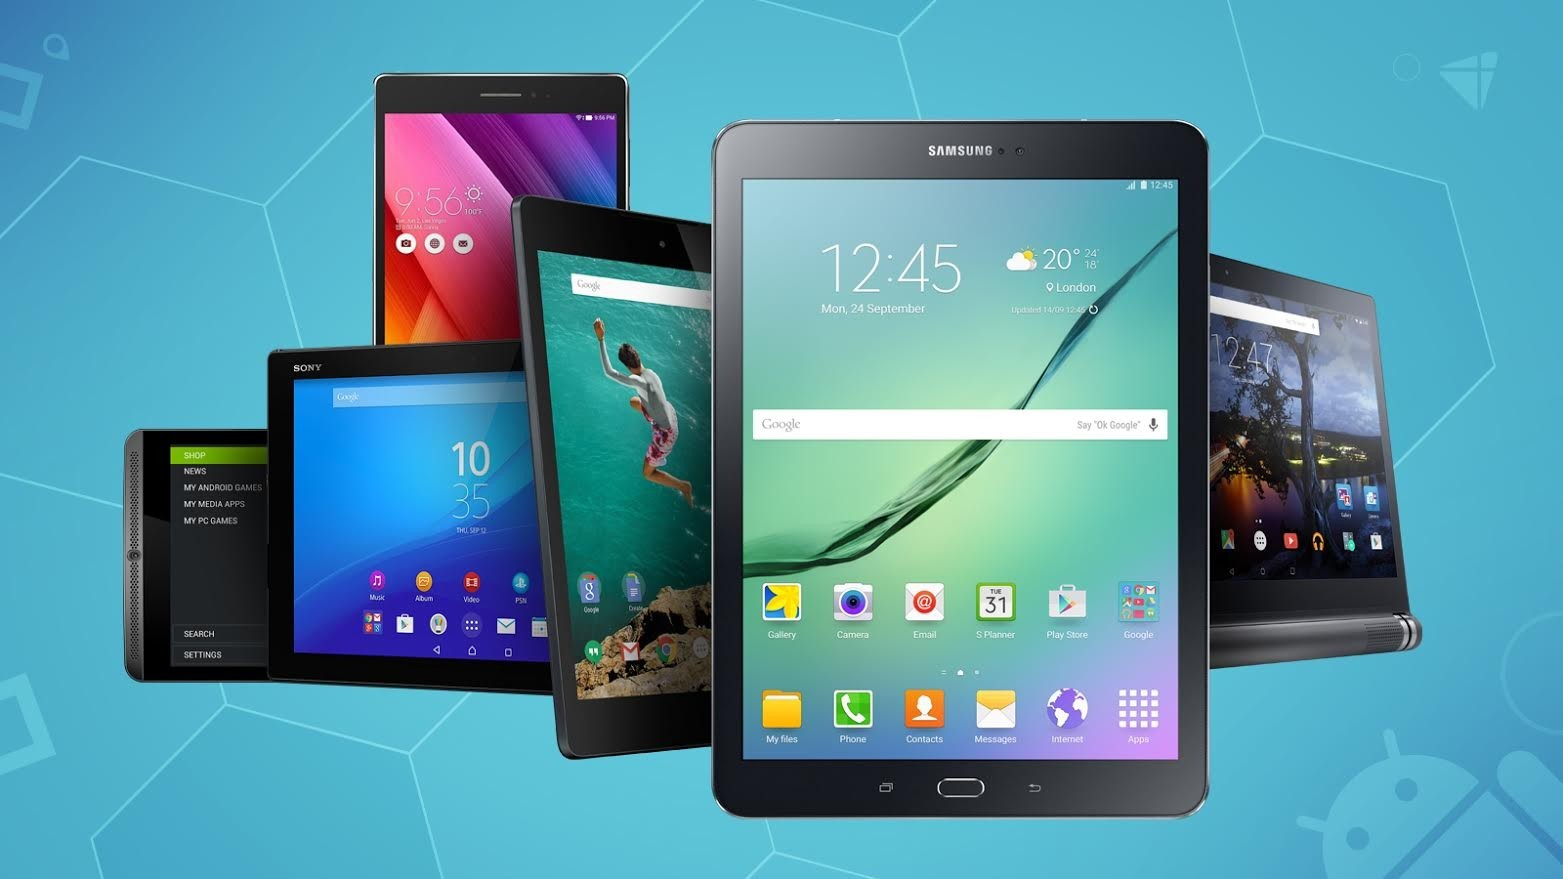 How to Choose the Best Cheap Android Tablet within Your